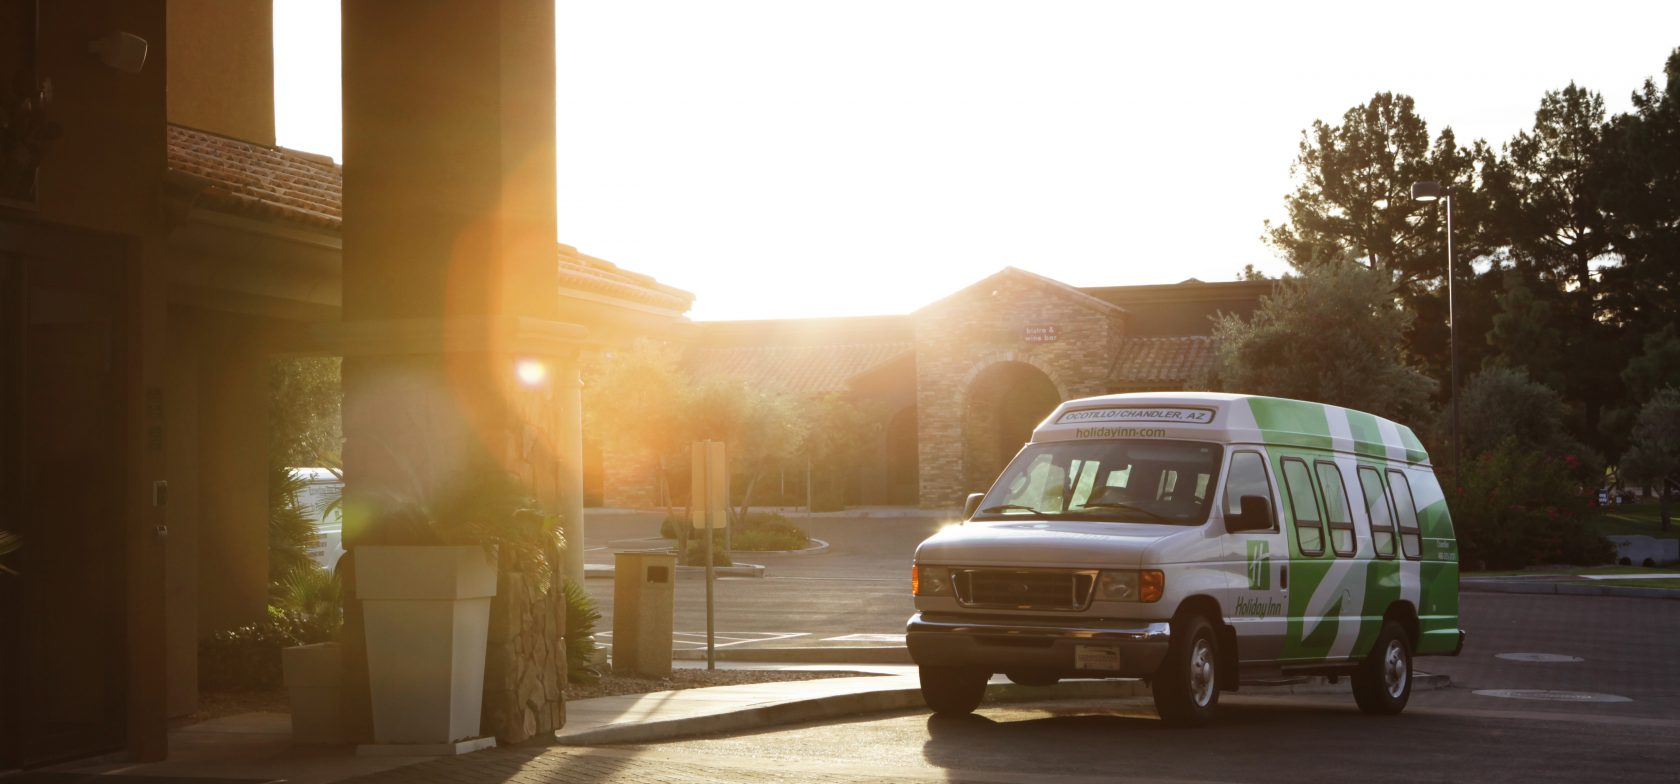 Holiday Inn Phoenix Chandler Transport Van